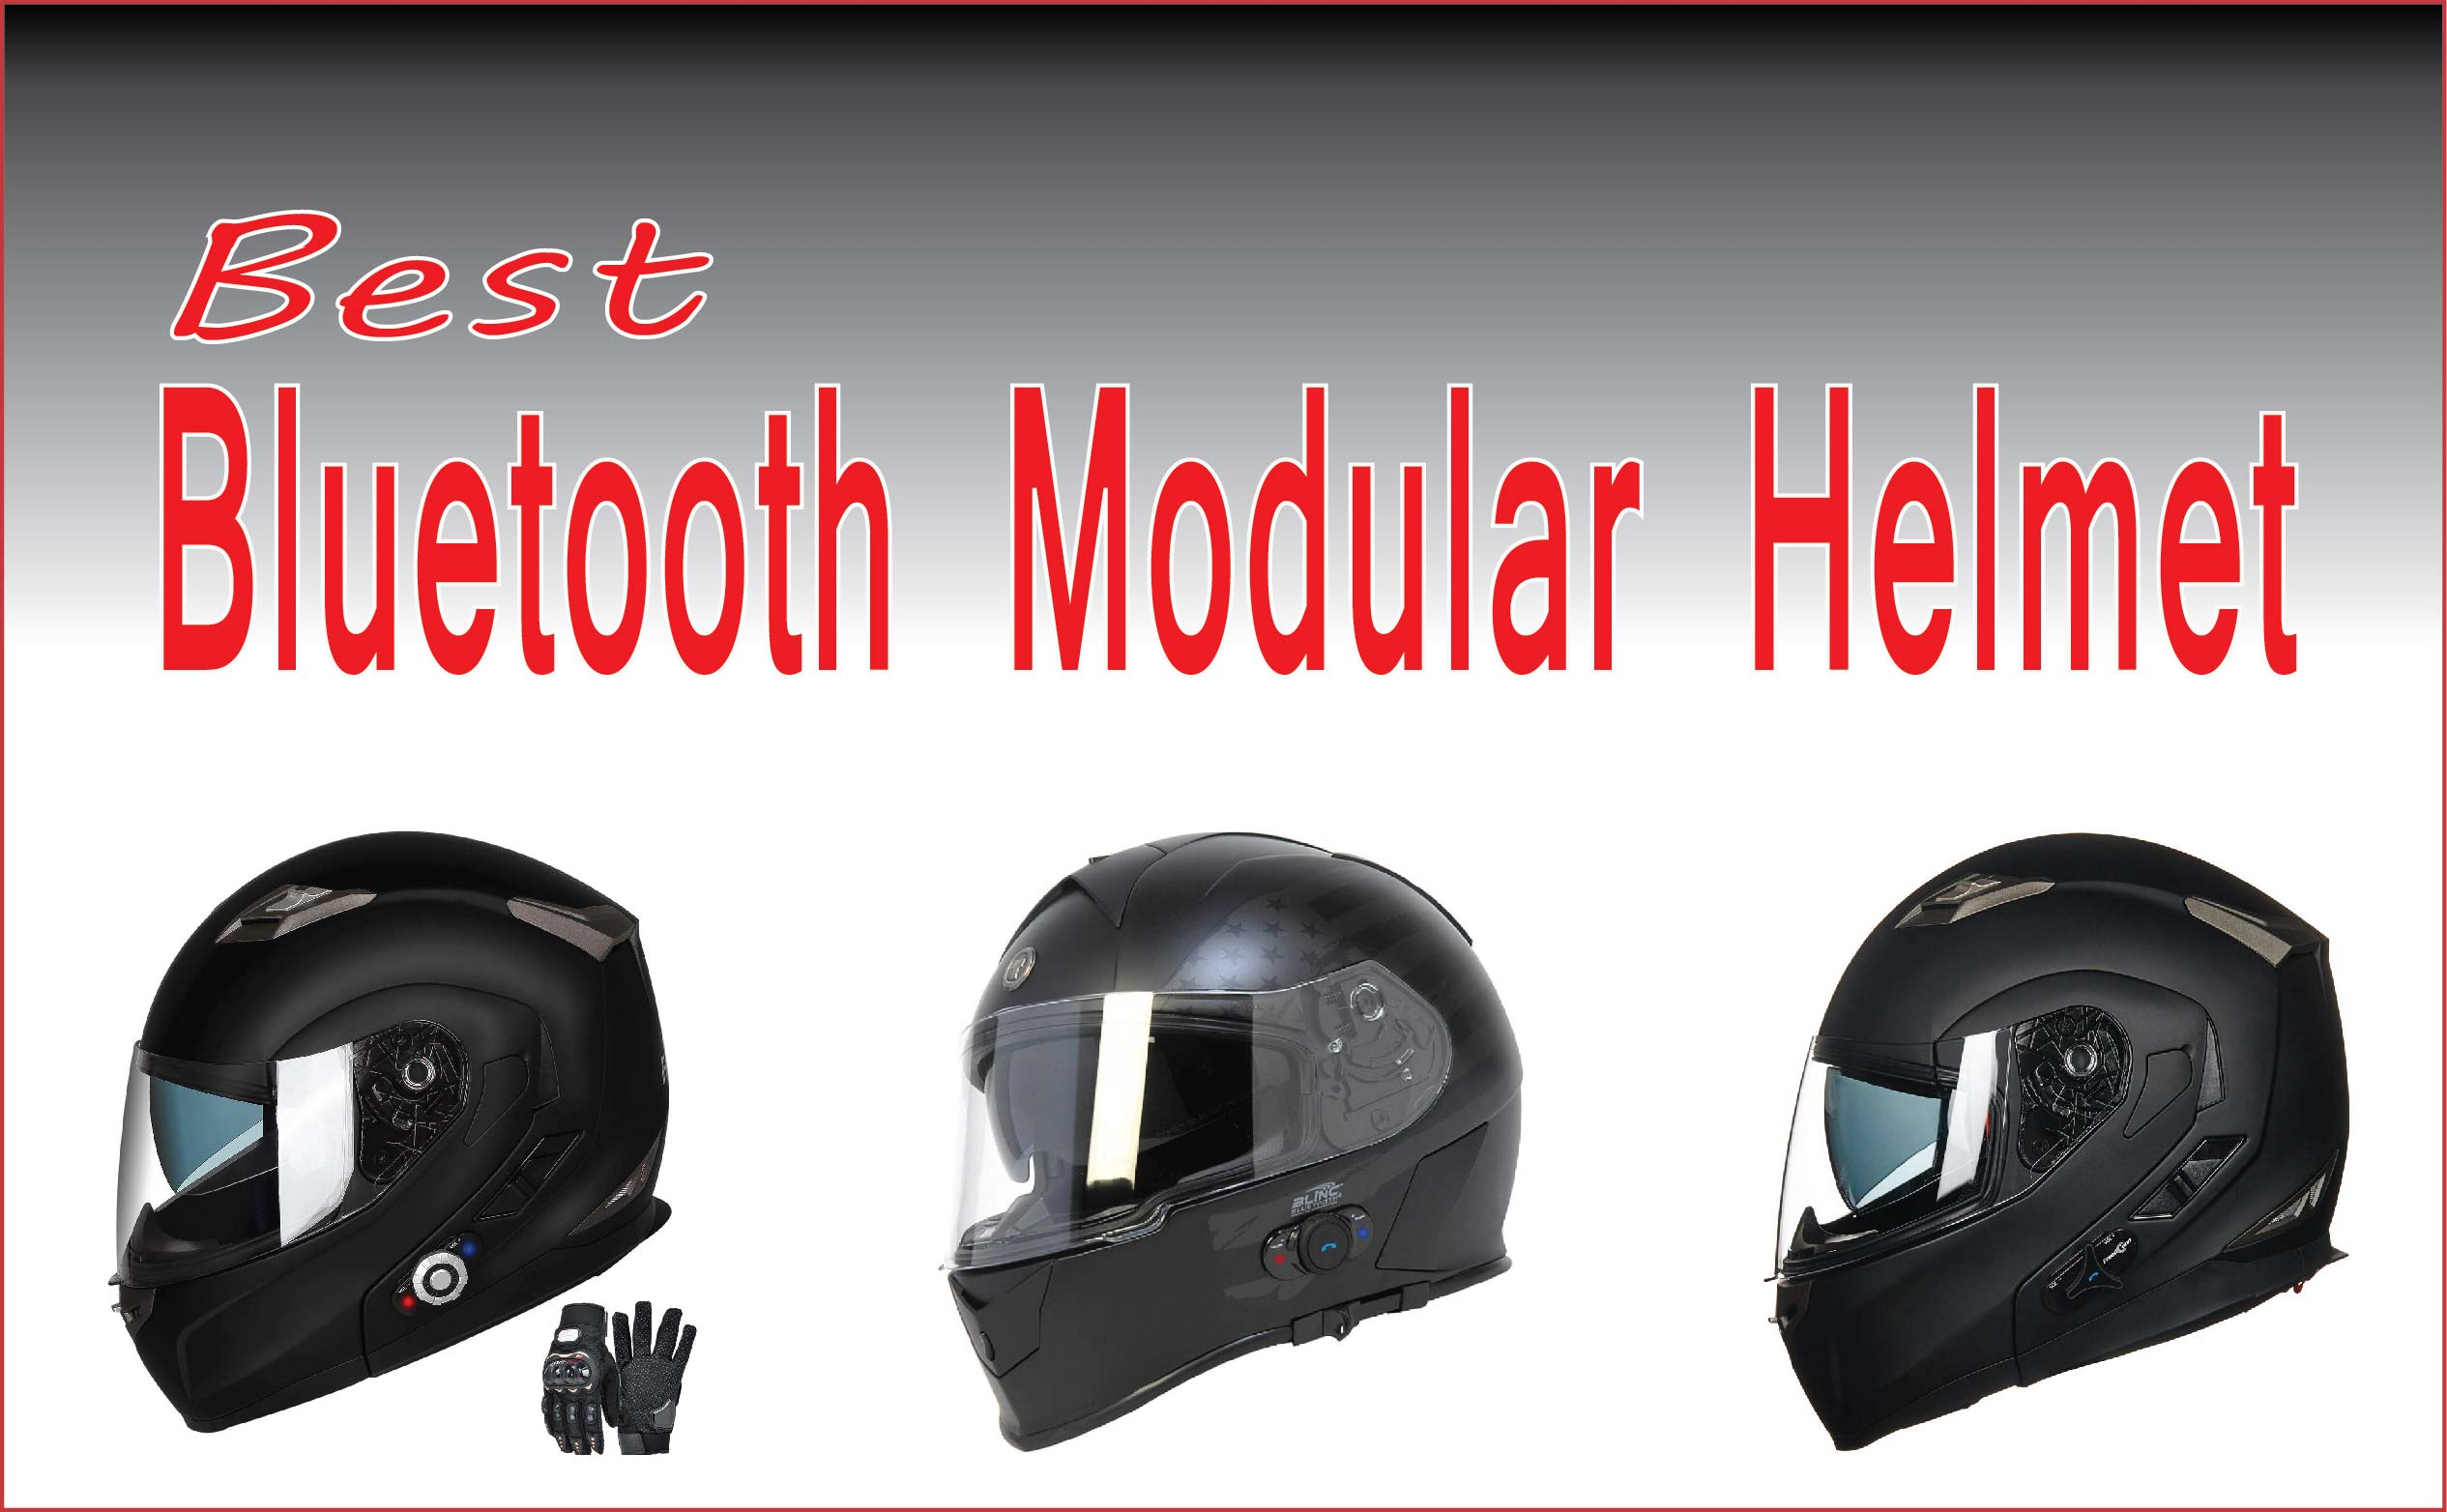 Best Bluetooth Modular Helmet